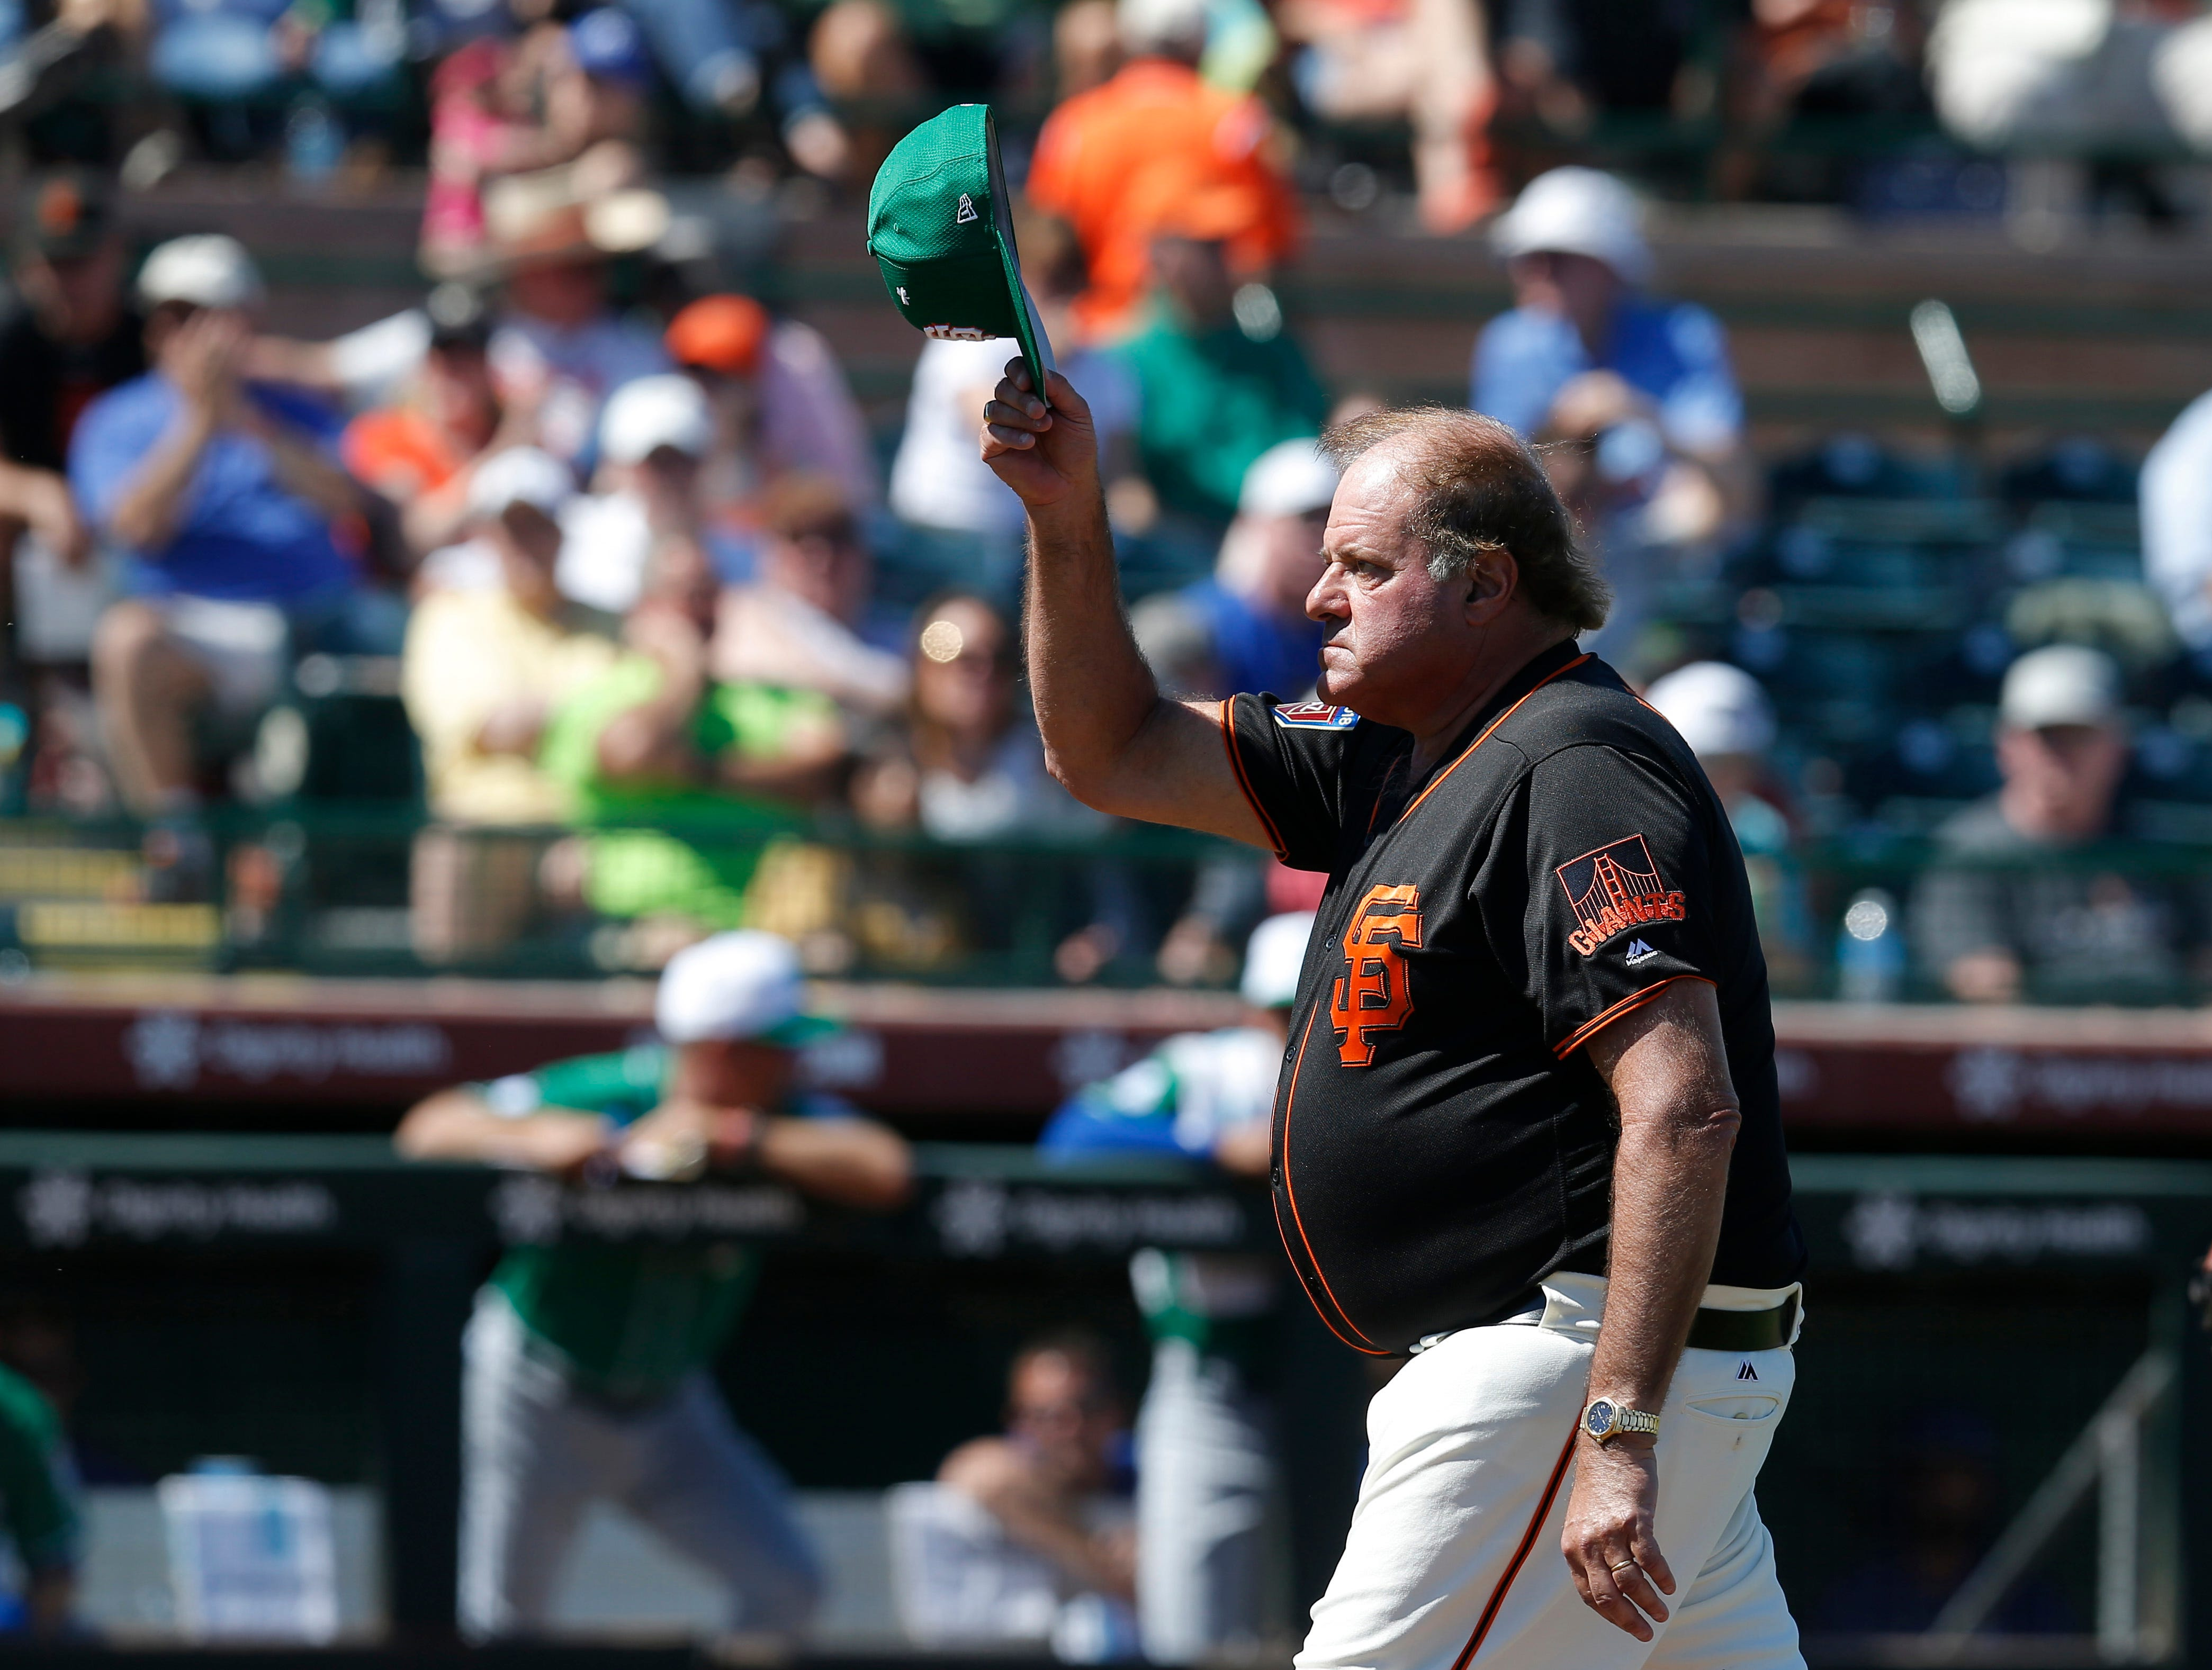 March 17: Chris Berman acknowledges the fans during a game between the Giants and Royals.